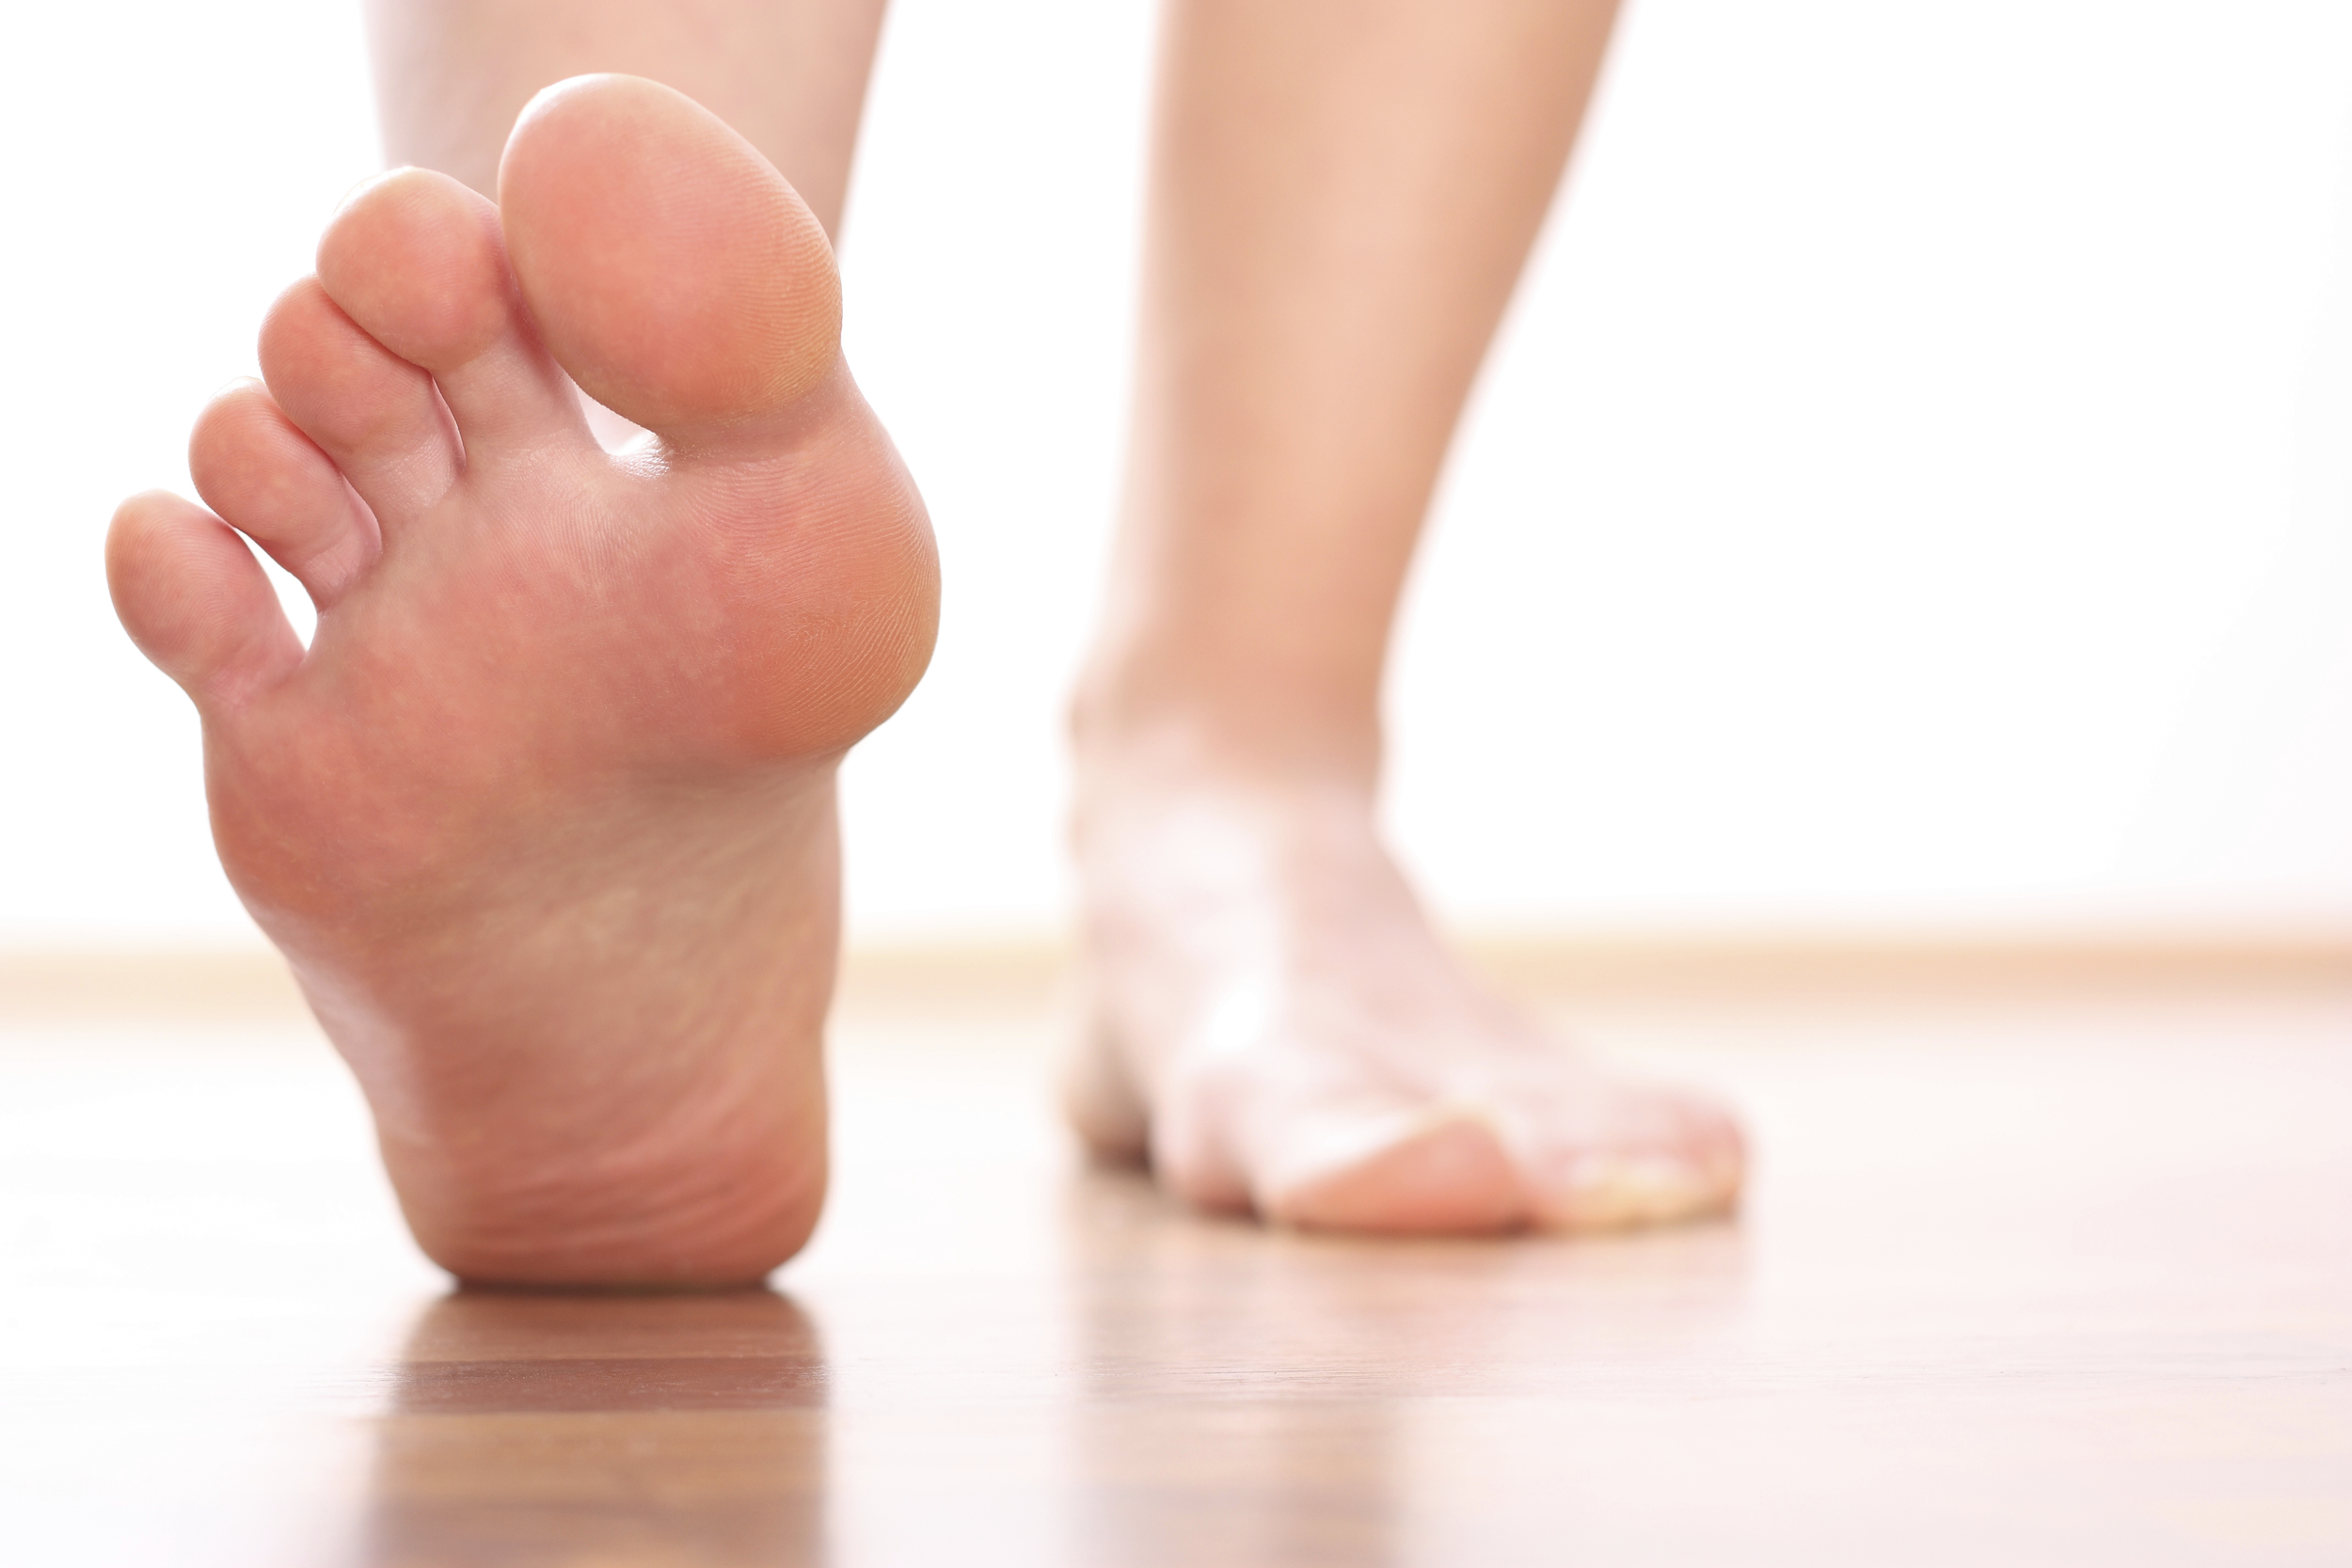 The pain that gradually developsfrom Plantar Fasciitis may be a result of misalignment.